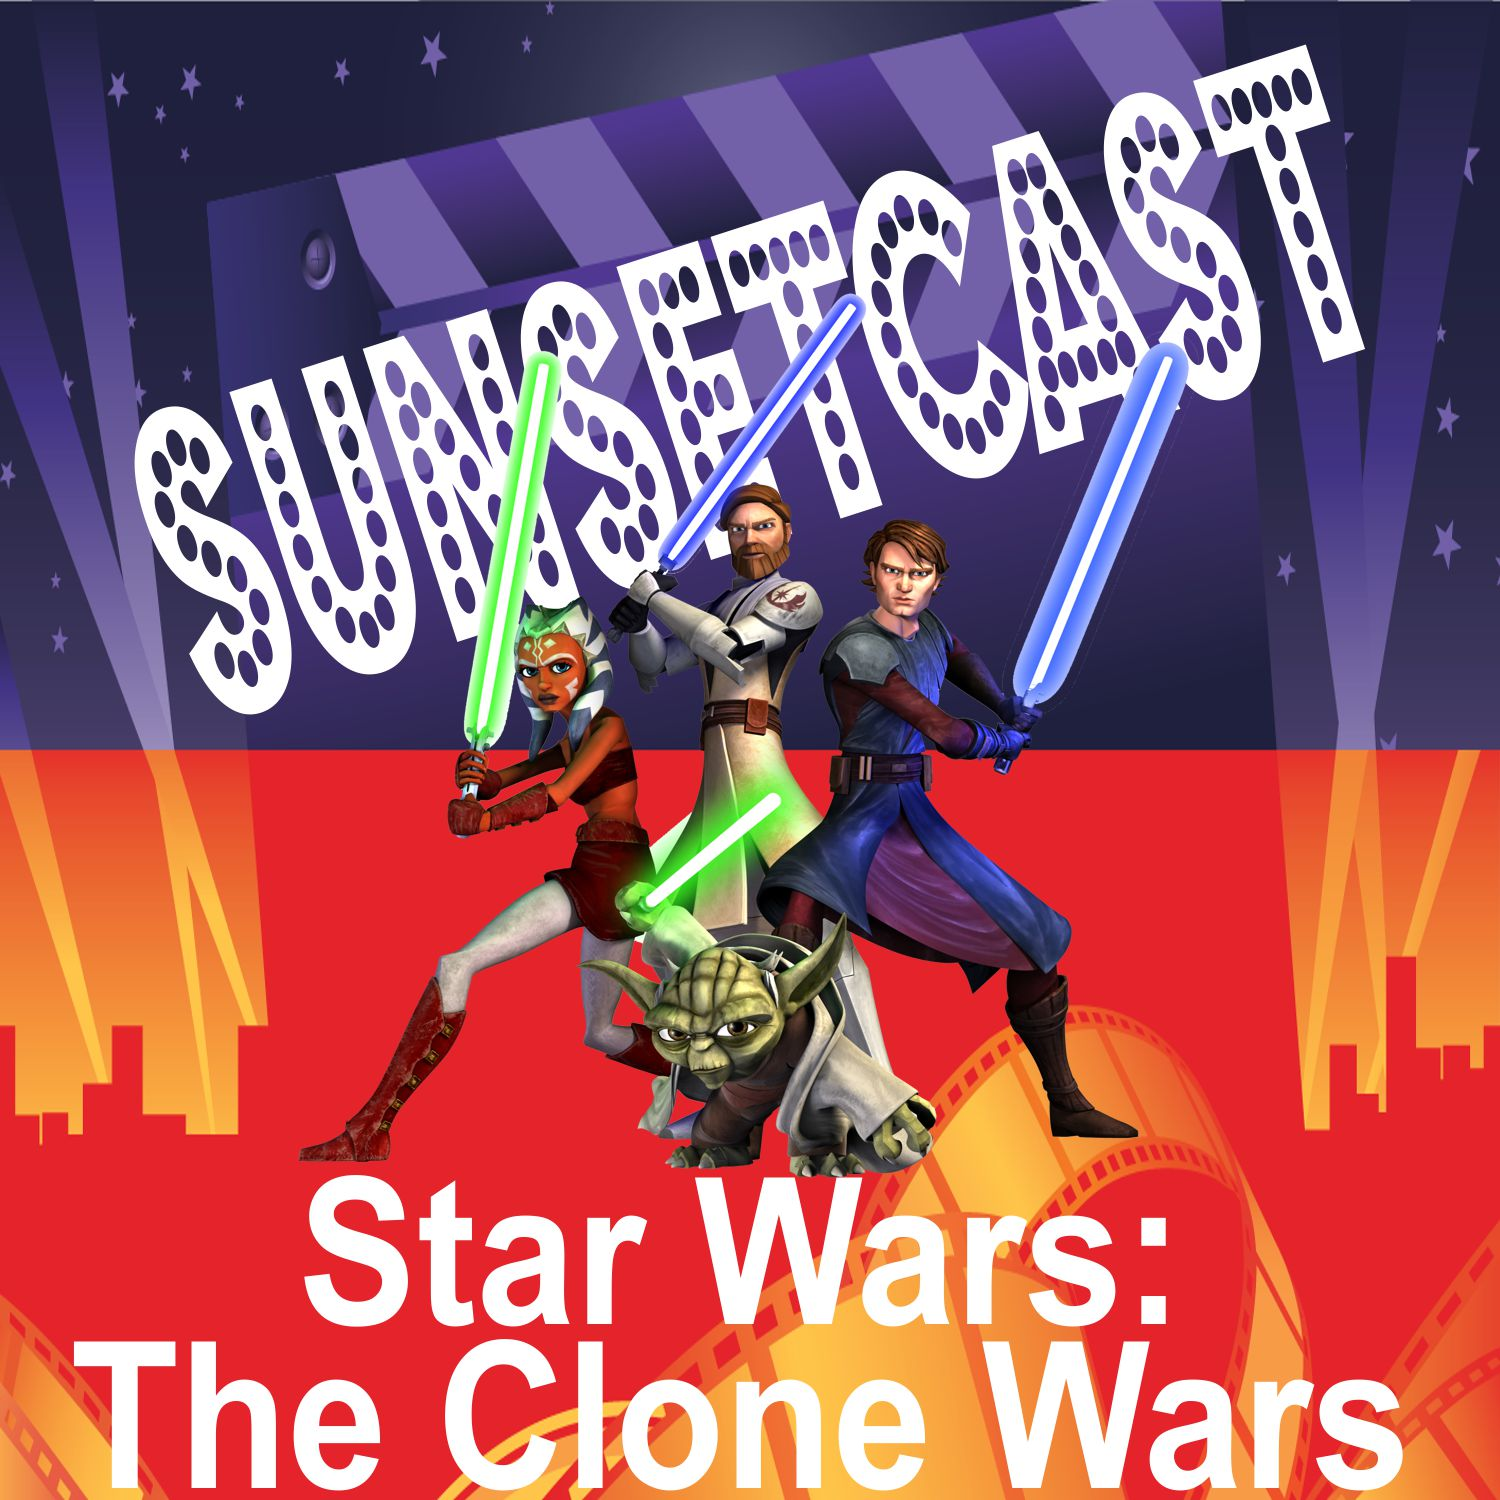 SunsetCast - Star Wars - The Clone Wars (Toons)